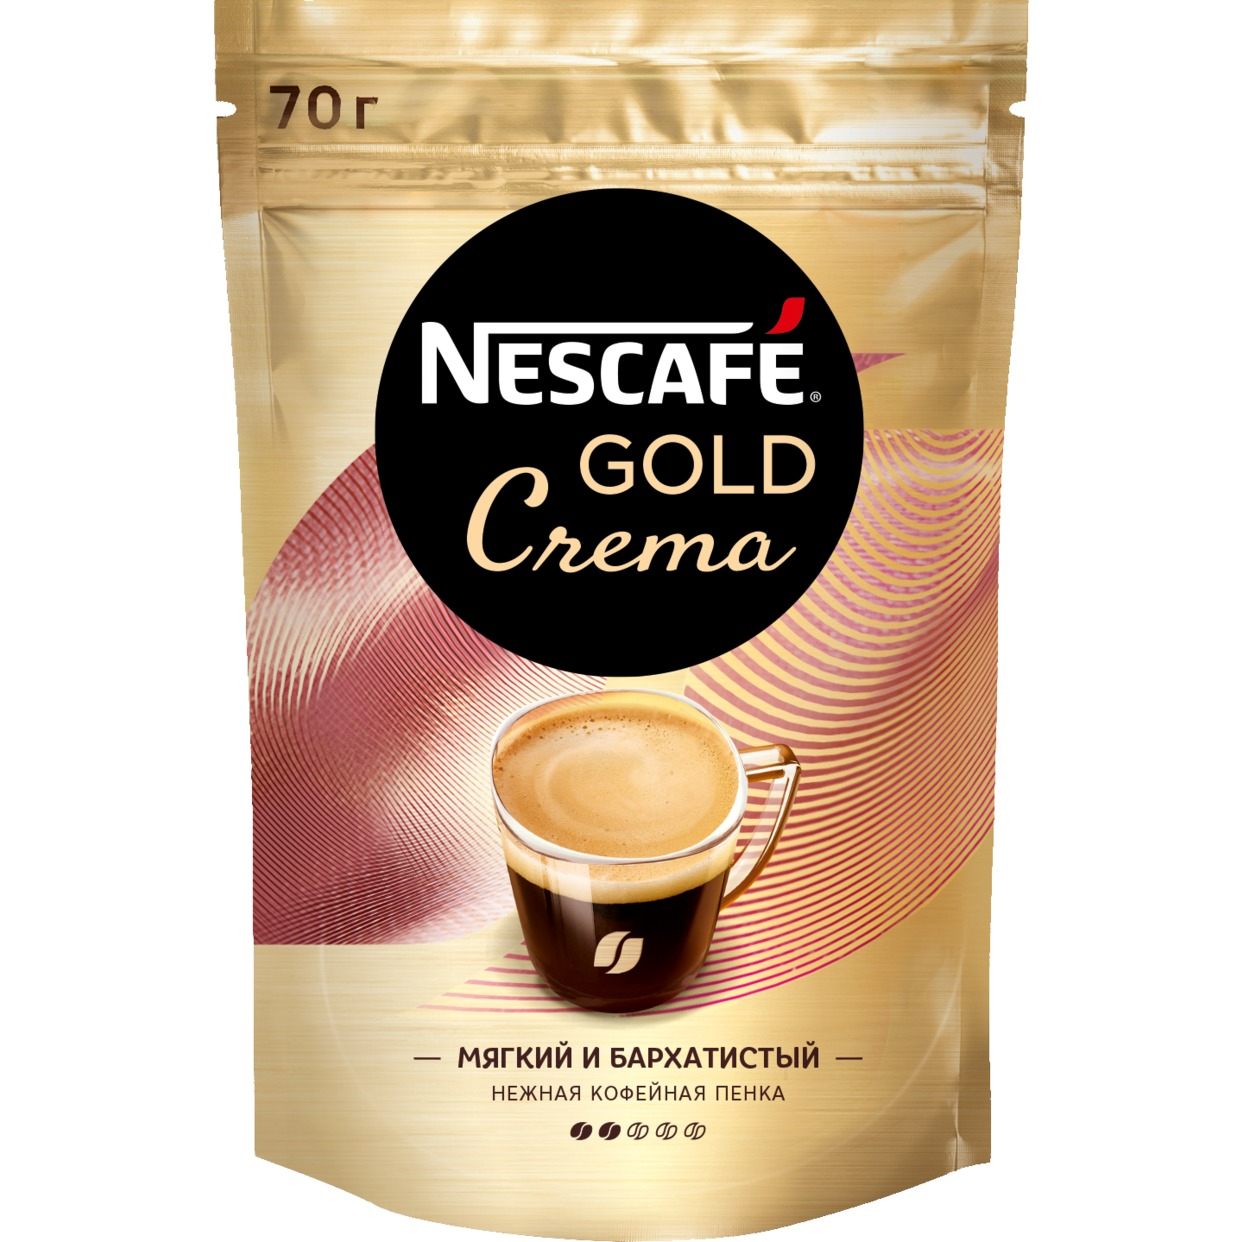 Кофе Nescafe Gold Crema, растворимый, 70 г